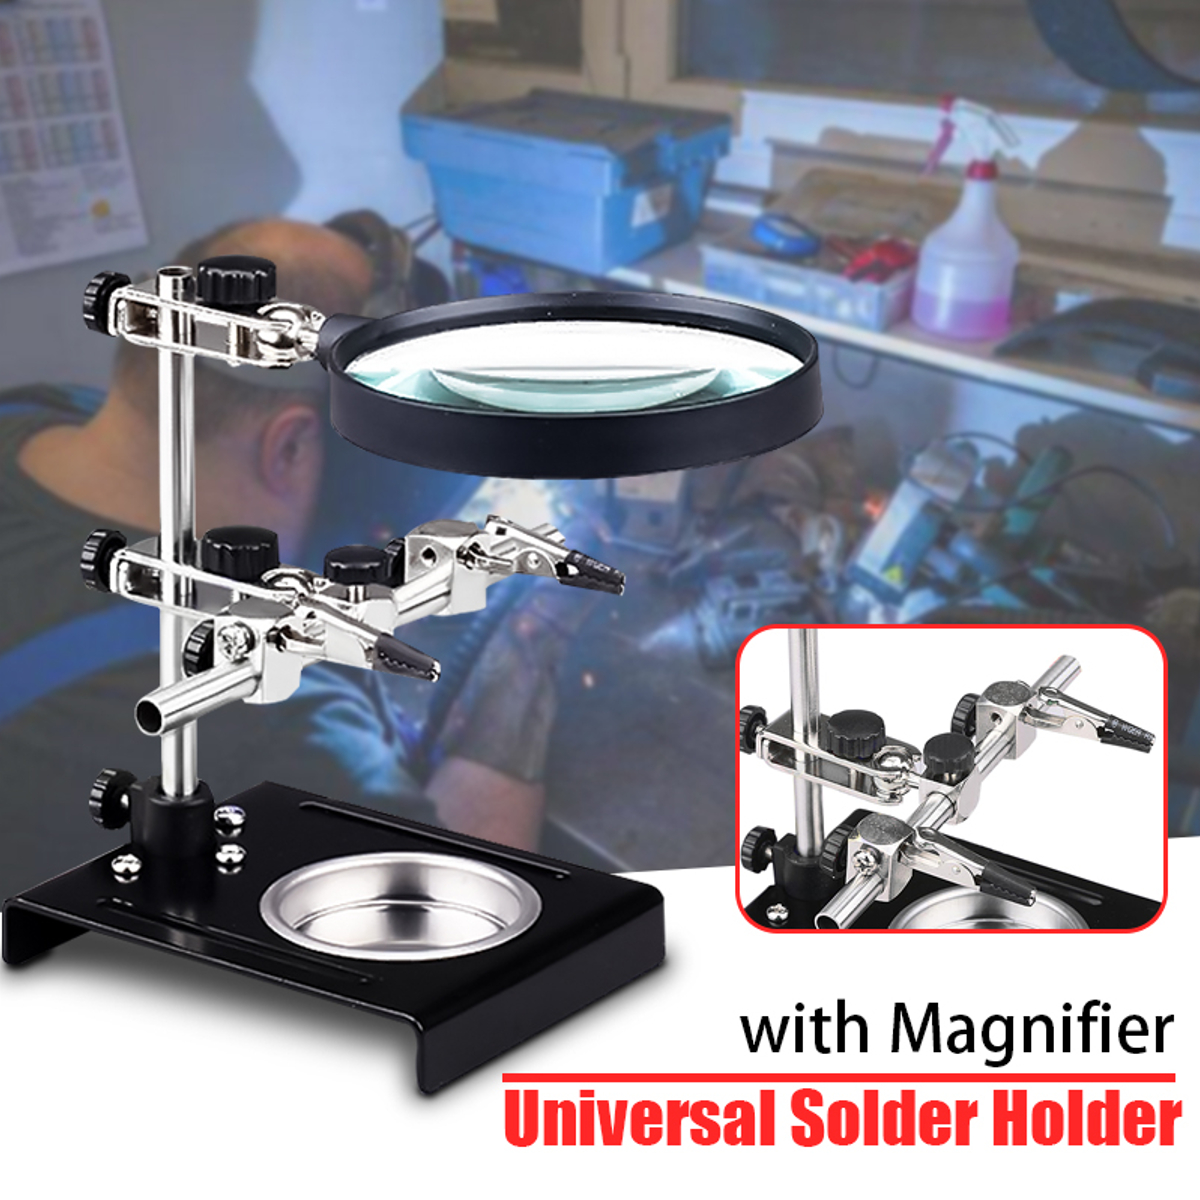 Universal Helping Hand Soldering Auxiliary Clip Magnifier 3X Stand Electronic Welding Clamp Magnifying Station Holder Bracket hand soldering iron stand helping clamp magnifying tool auxiliary clip magnifier station holder